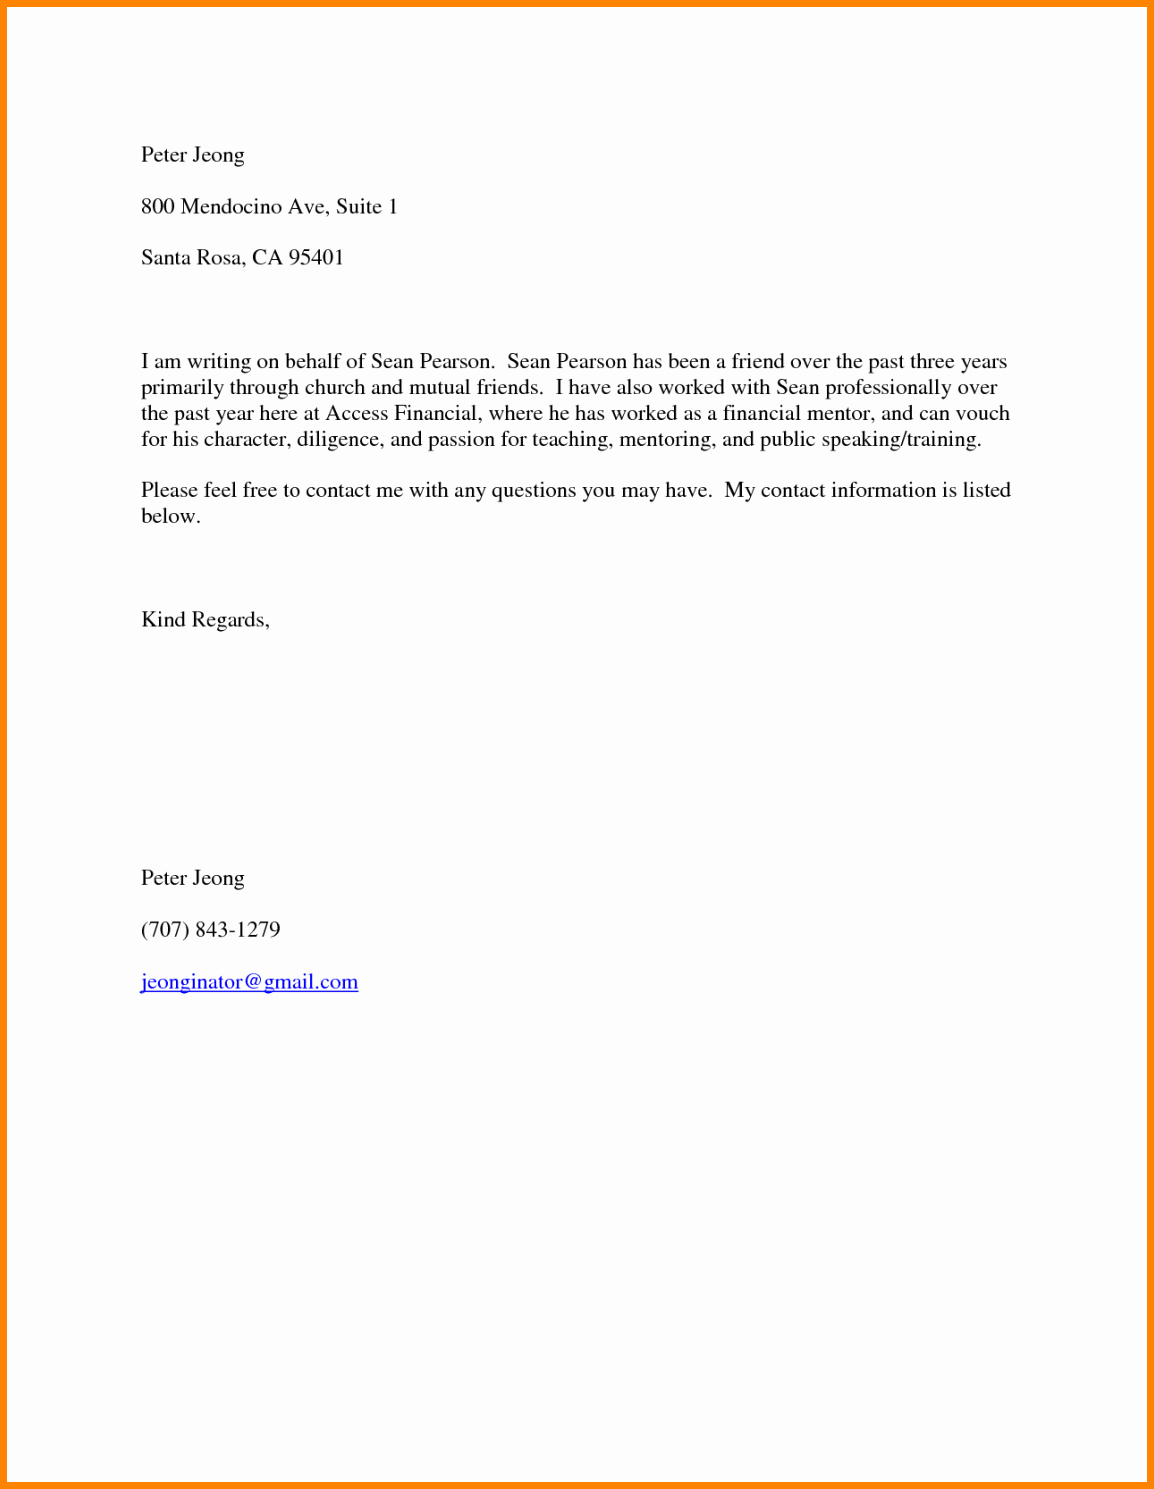 Texas Tech Letter Of Recommendation Luxury Personal Reference Sample Letter for A Friend